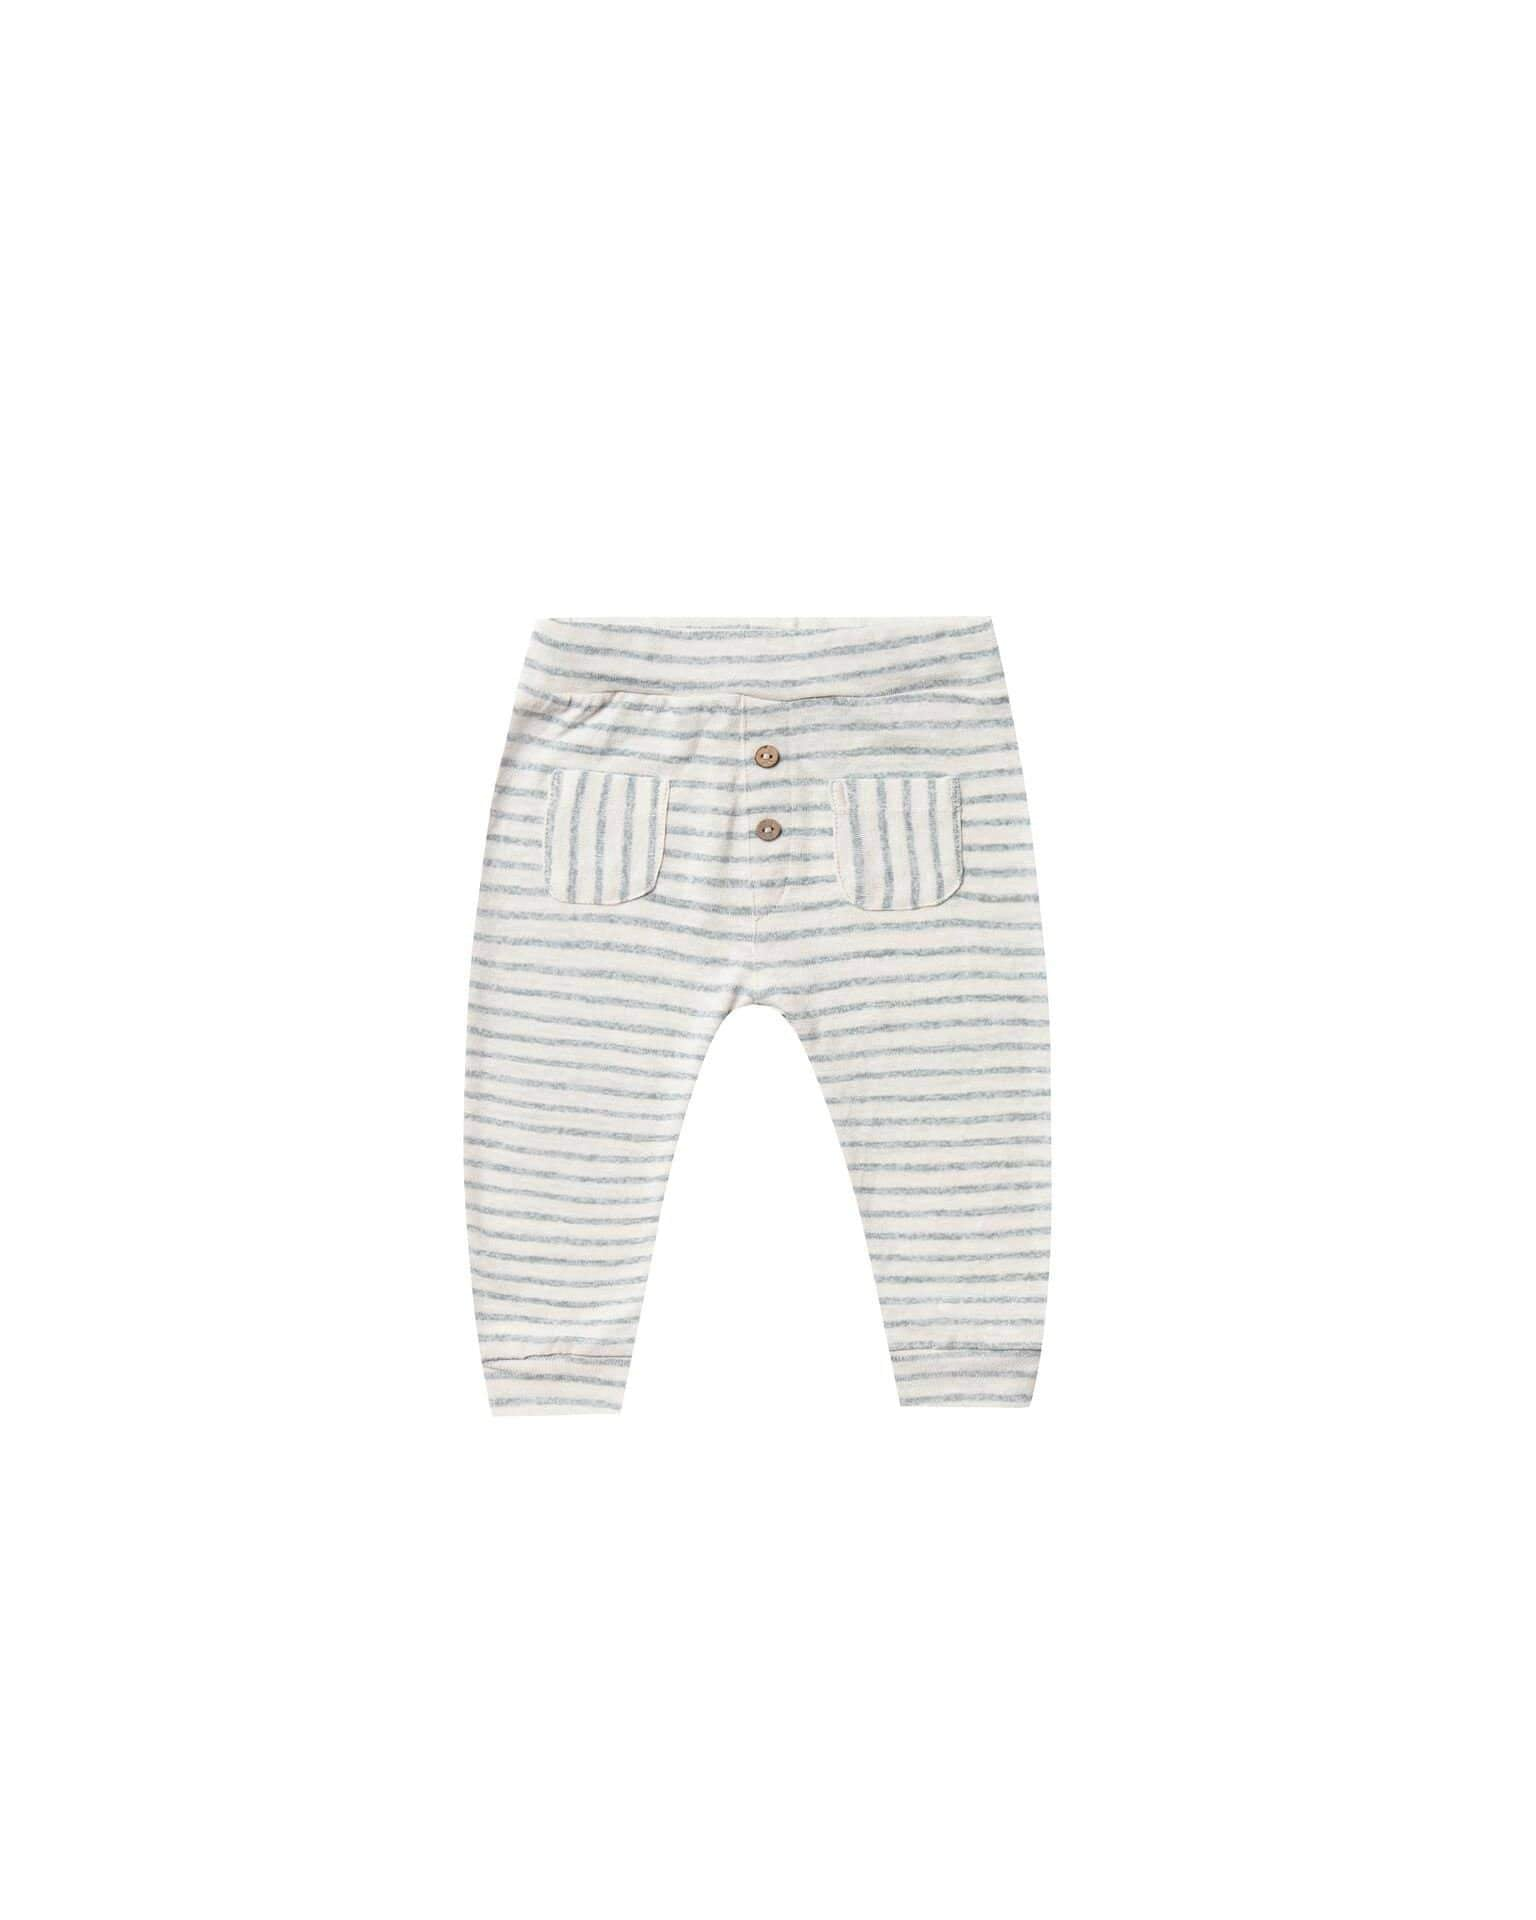 Rylee & Cru Pants Stripe Baby Pant - Sea